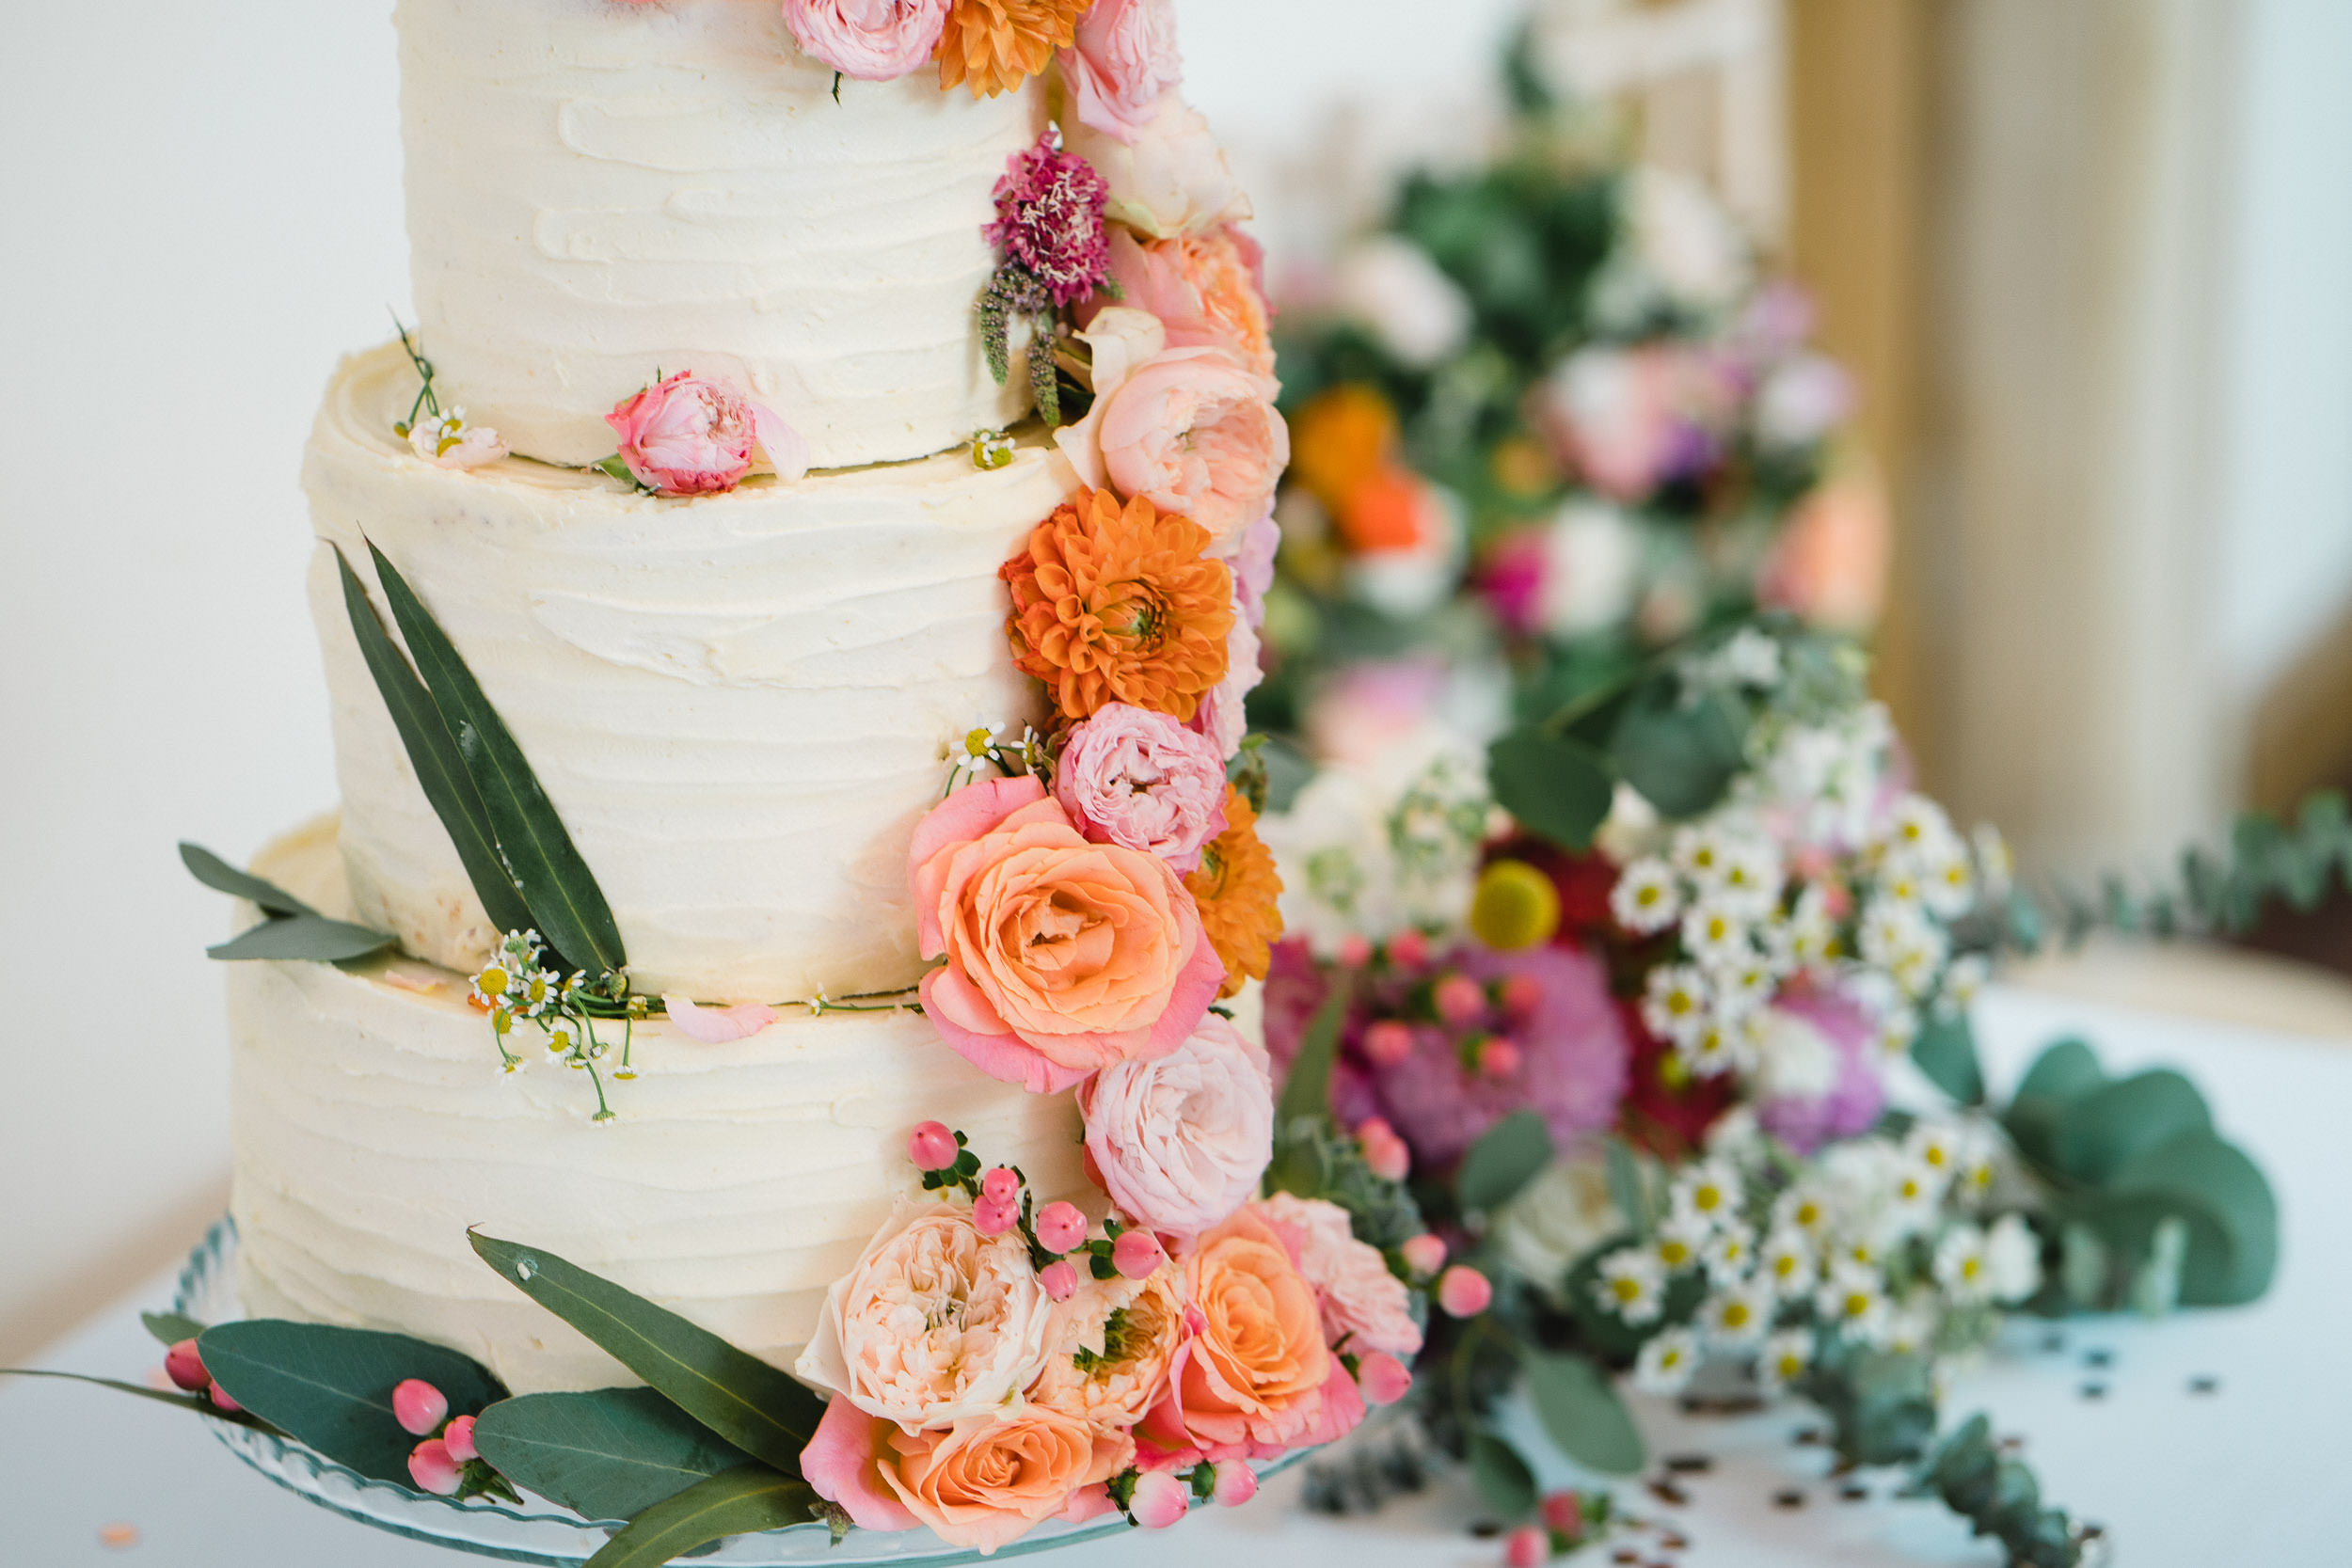 Orchardleigh Estate Wedding - The Wedding Cake